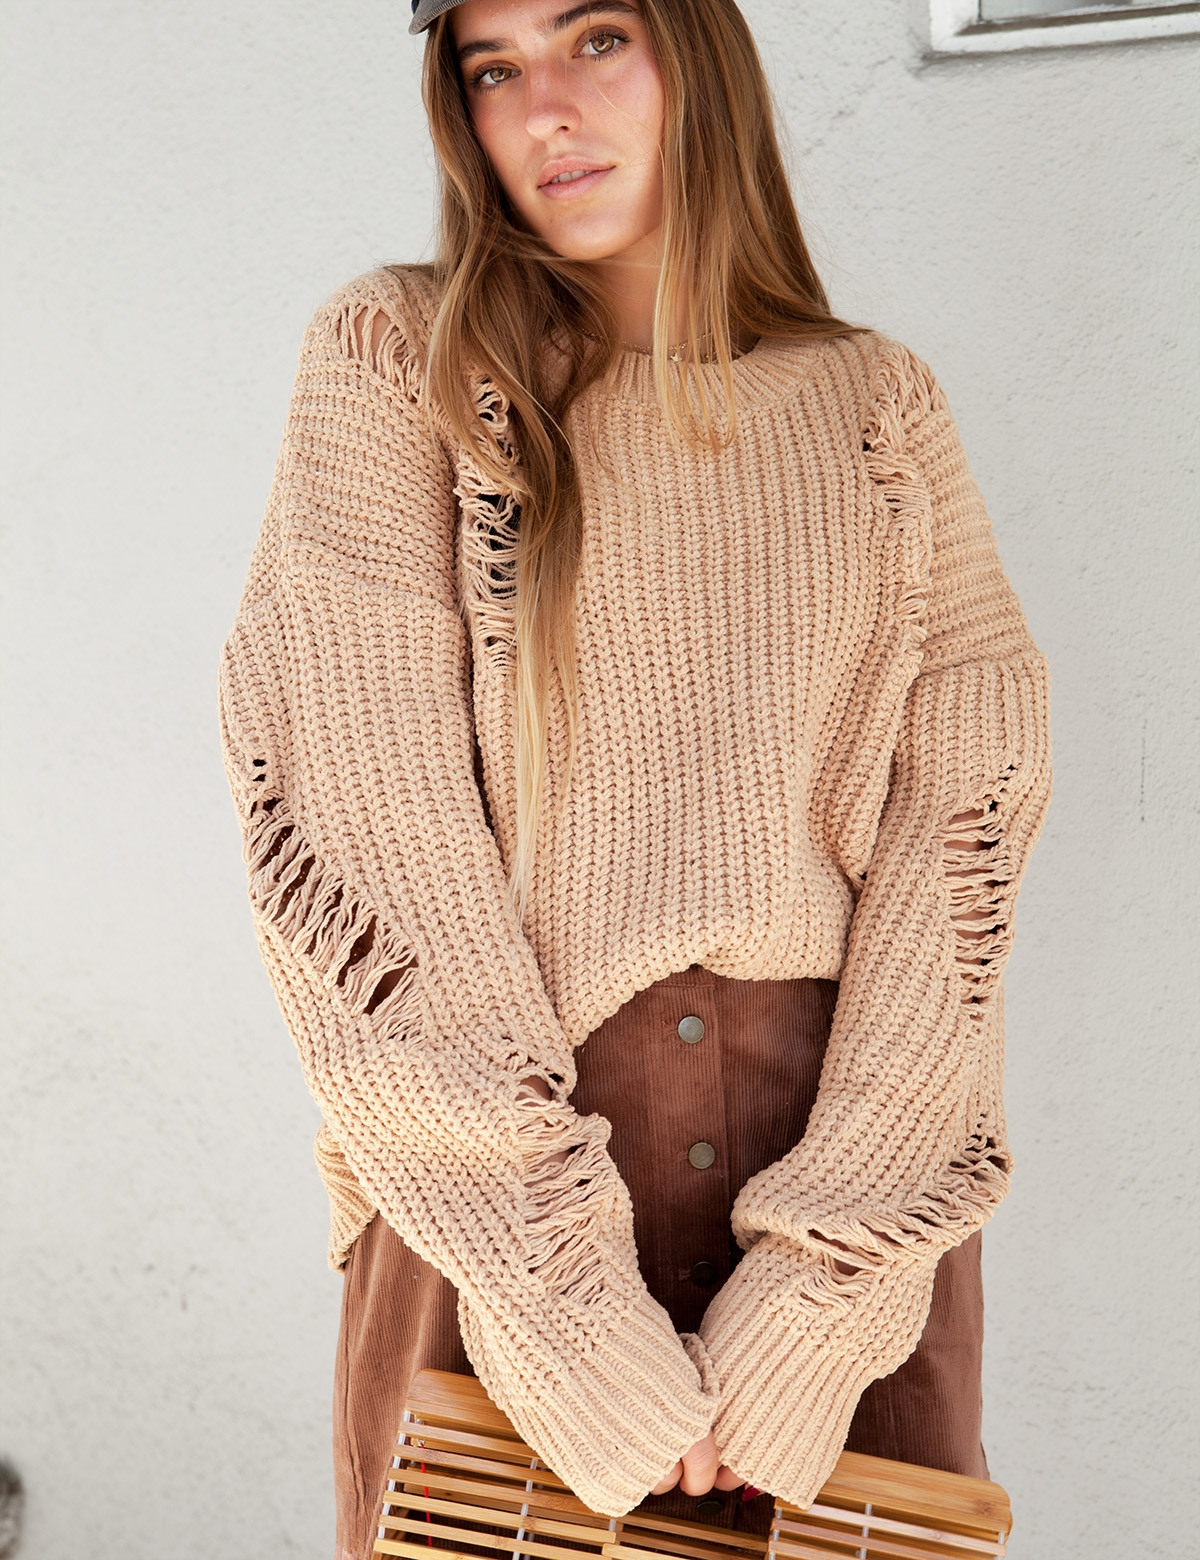 Cora Tan Sweater